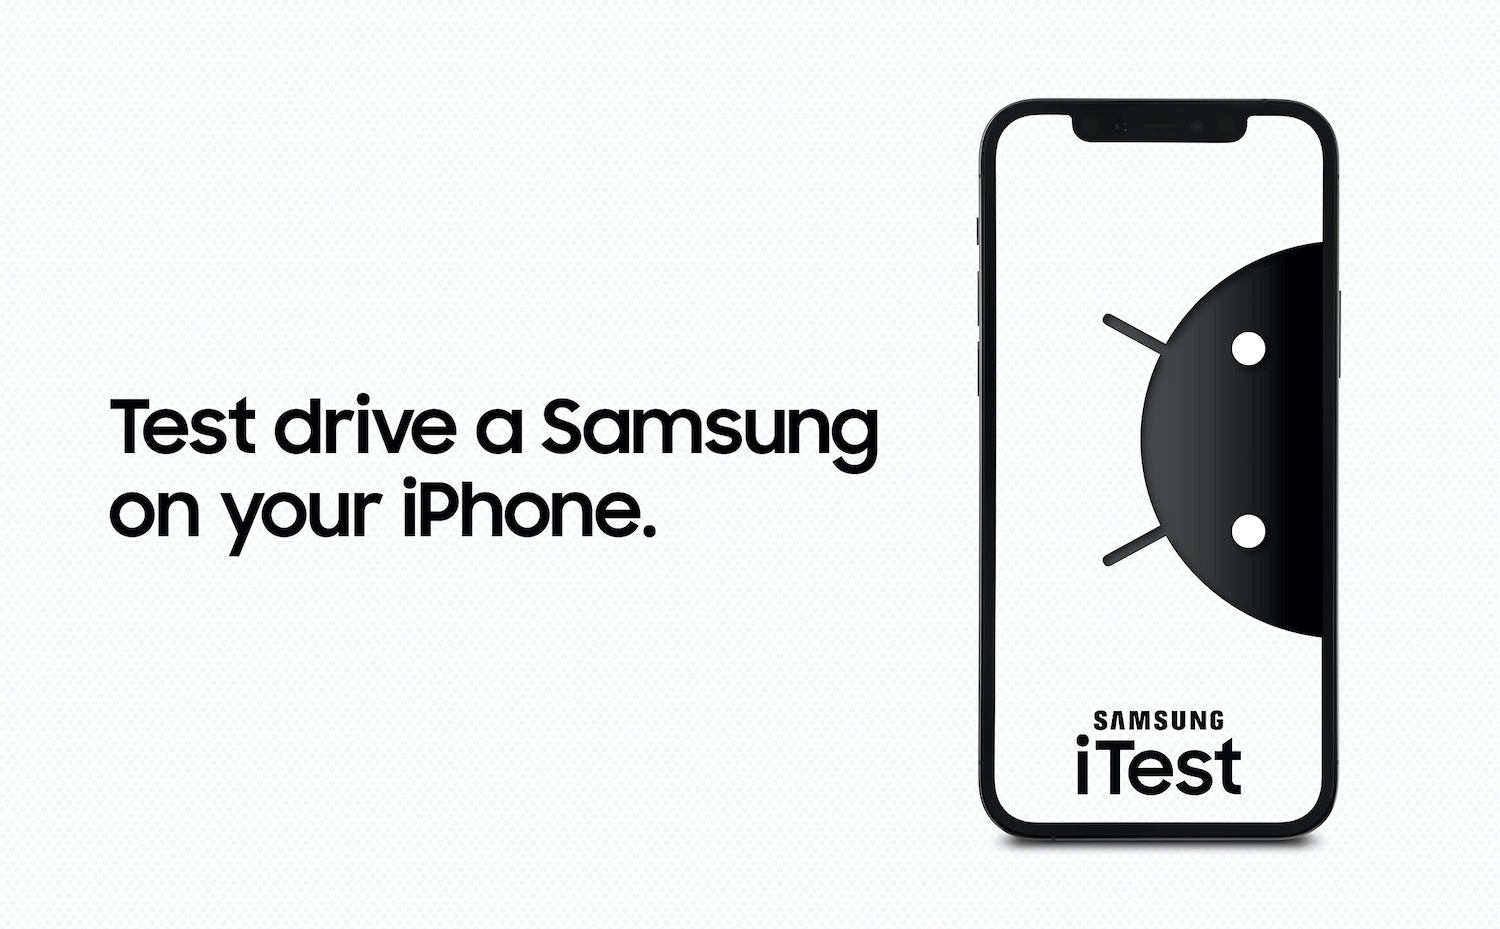 Samsung invites consumers to make the switch to Android with iTest launch via Tribal Aotearoa